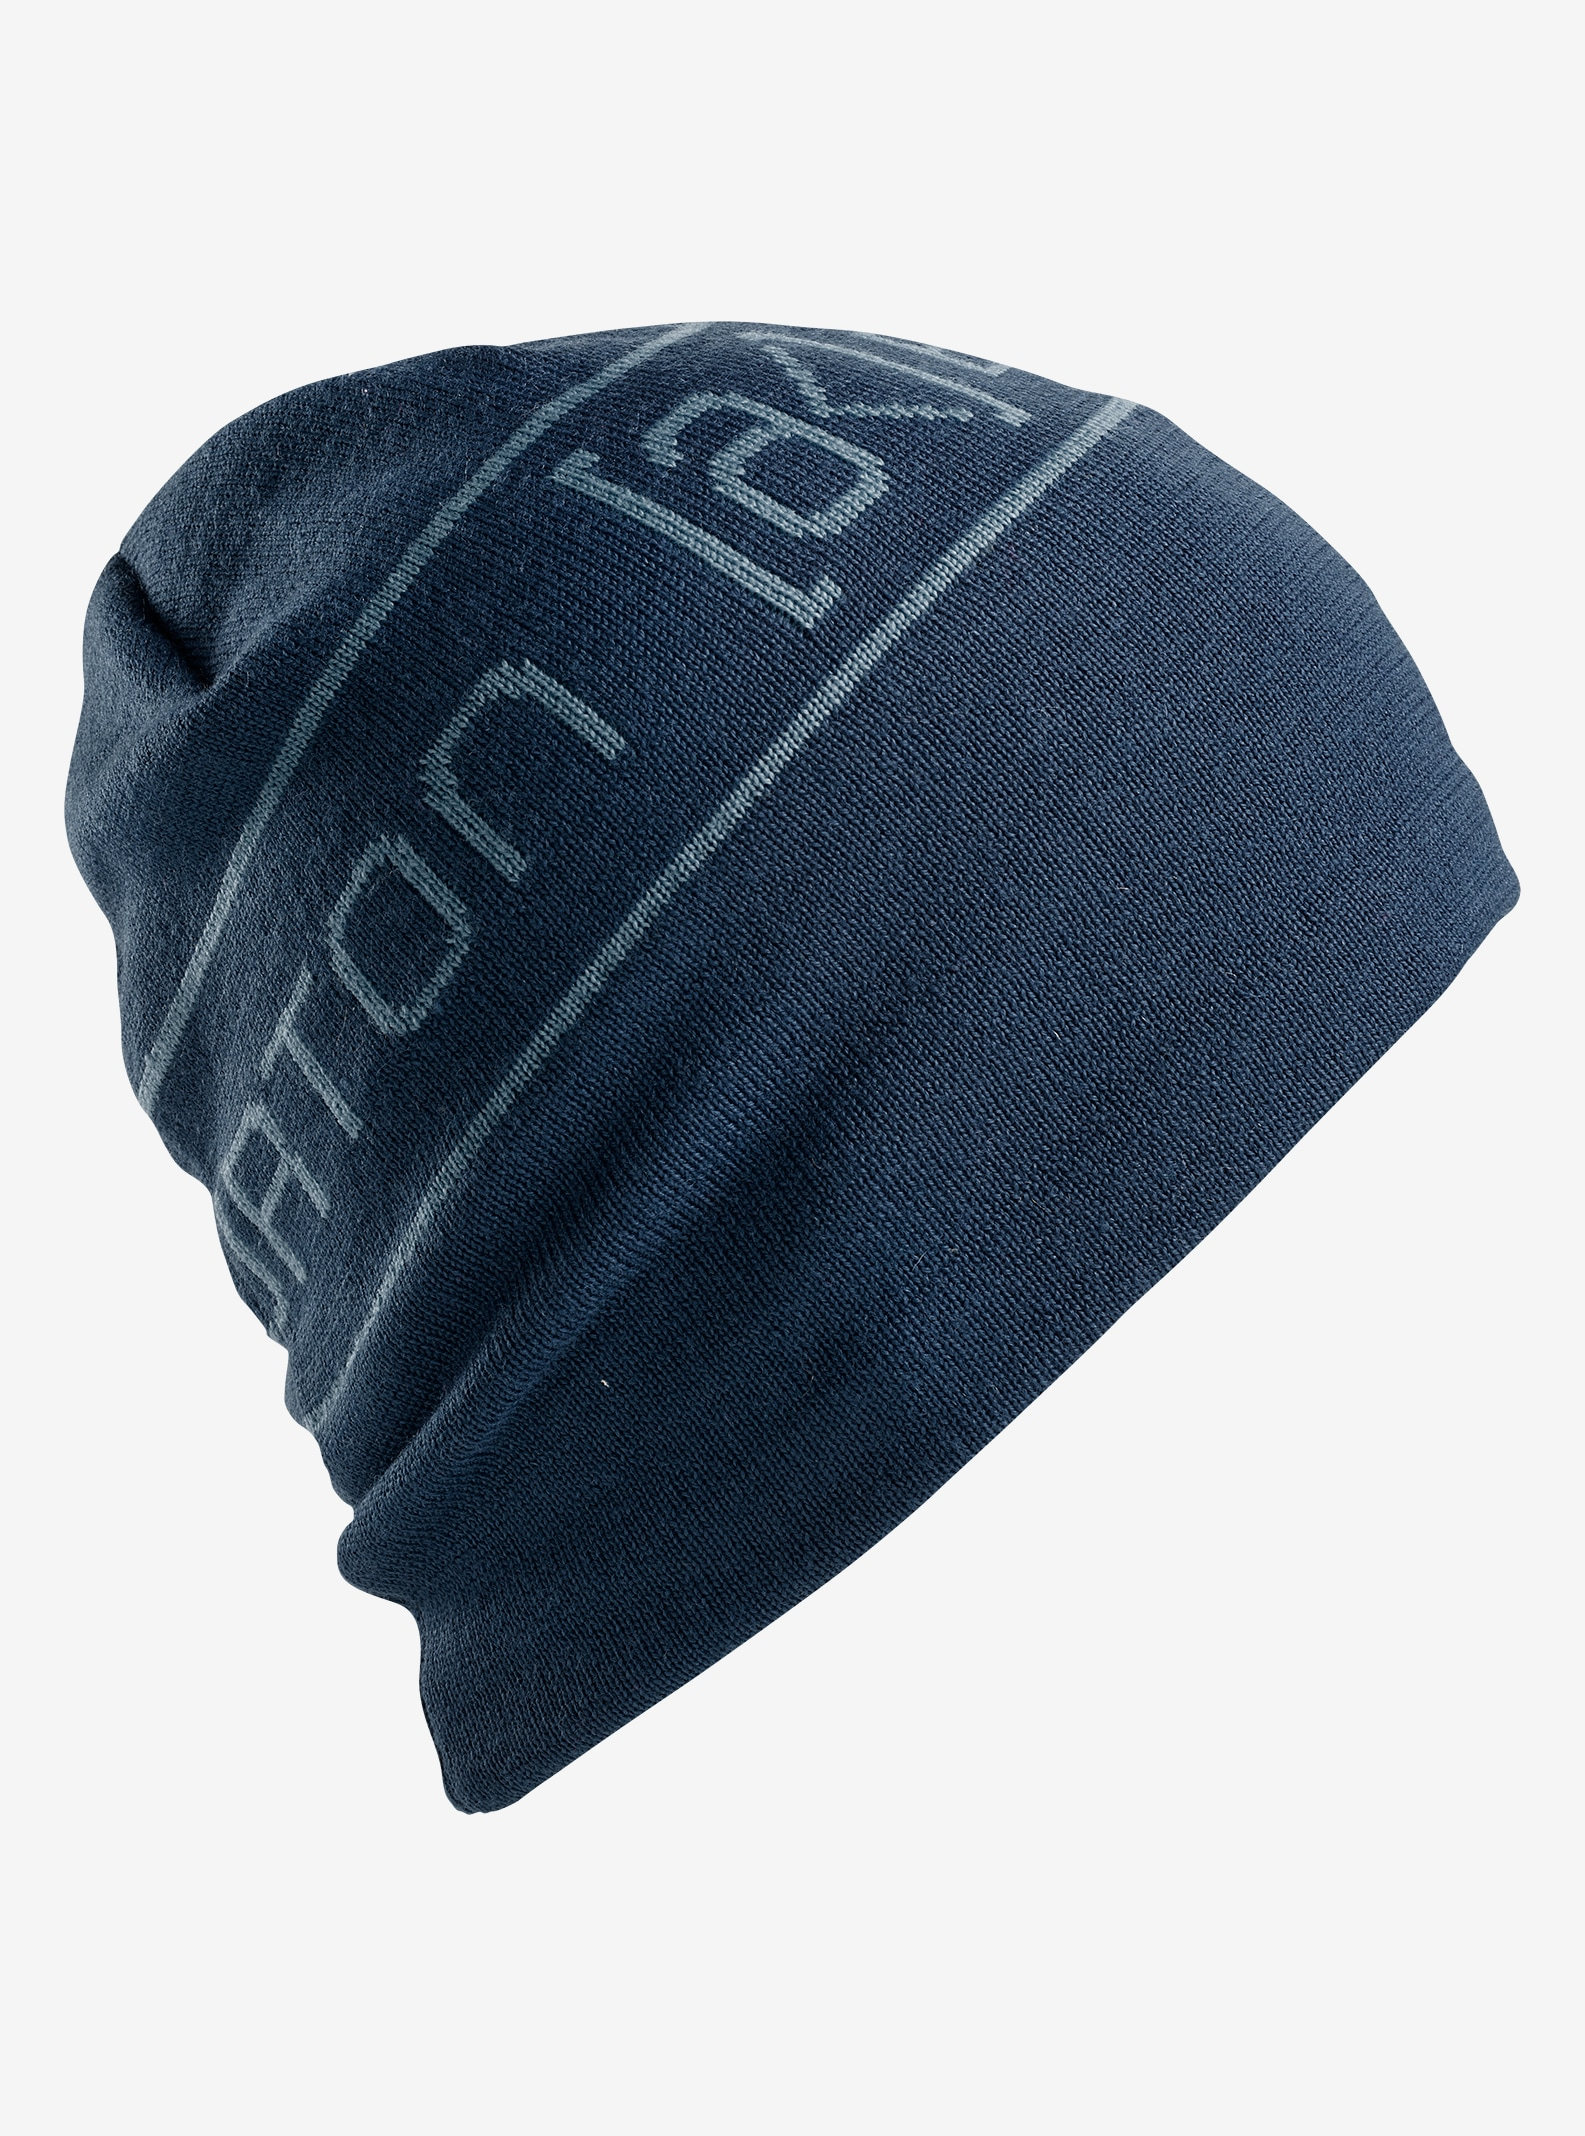 Men's Burton [ak] Tech Beanie shown in Mood Indigo